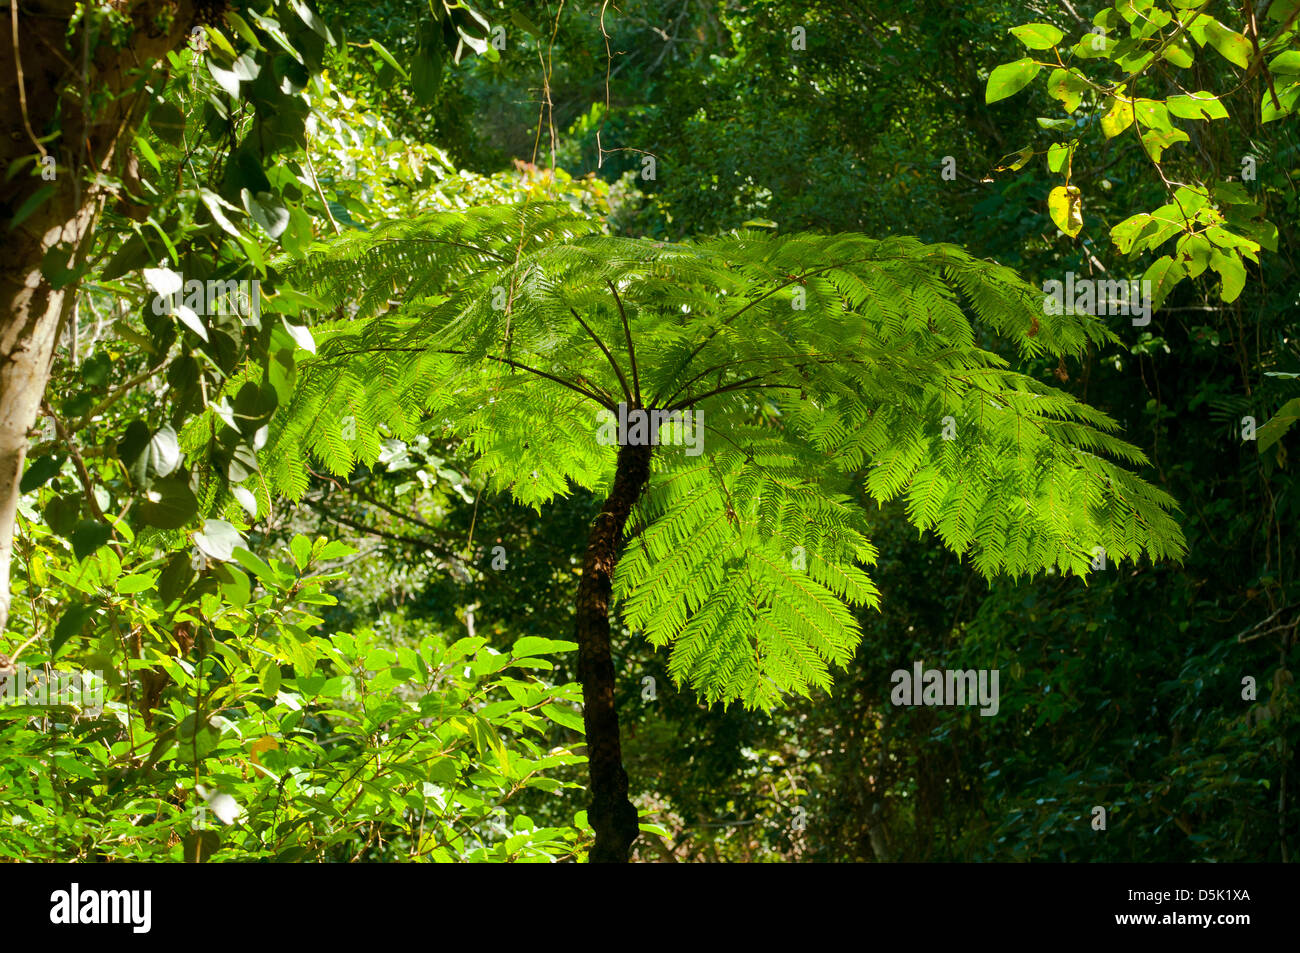 Cyanthea cooperi, Scaly Tree Fern - Stock Image